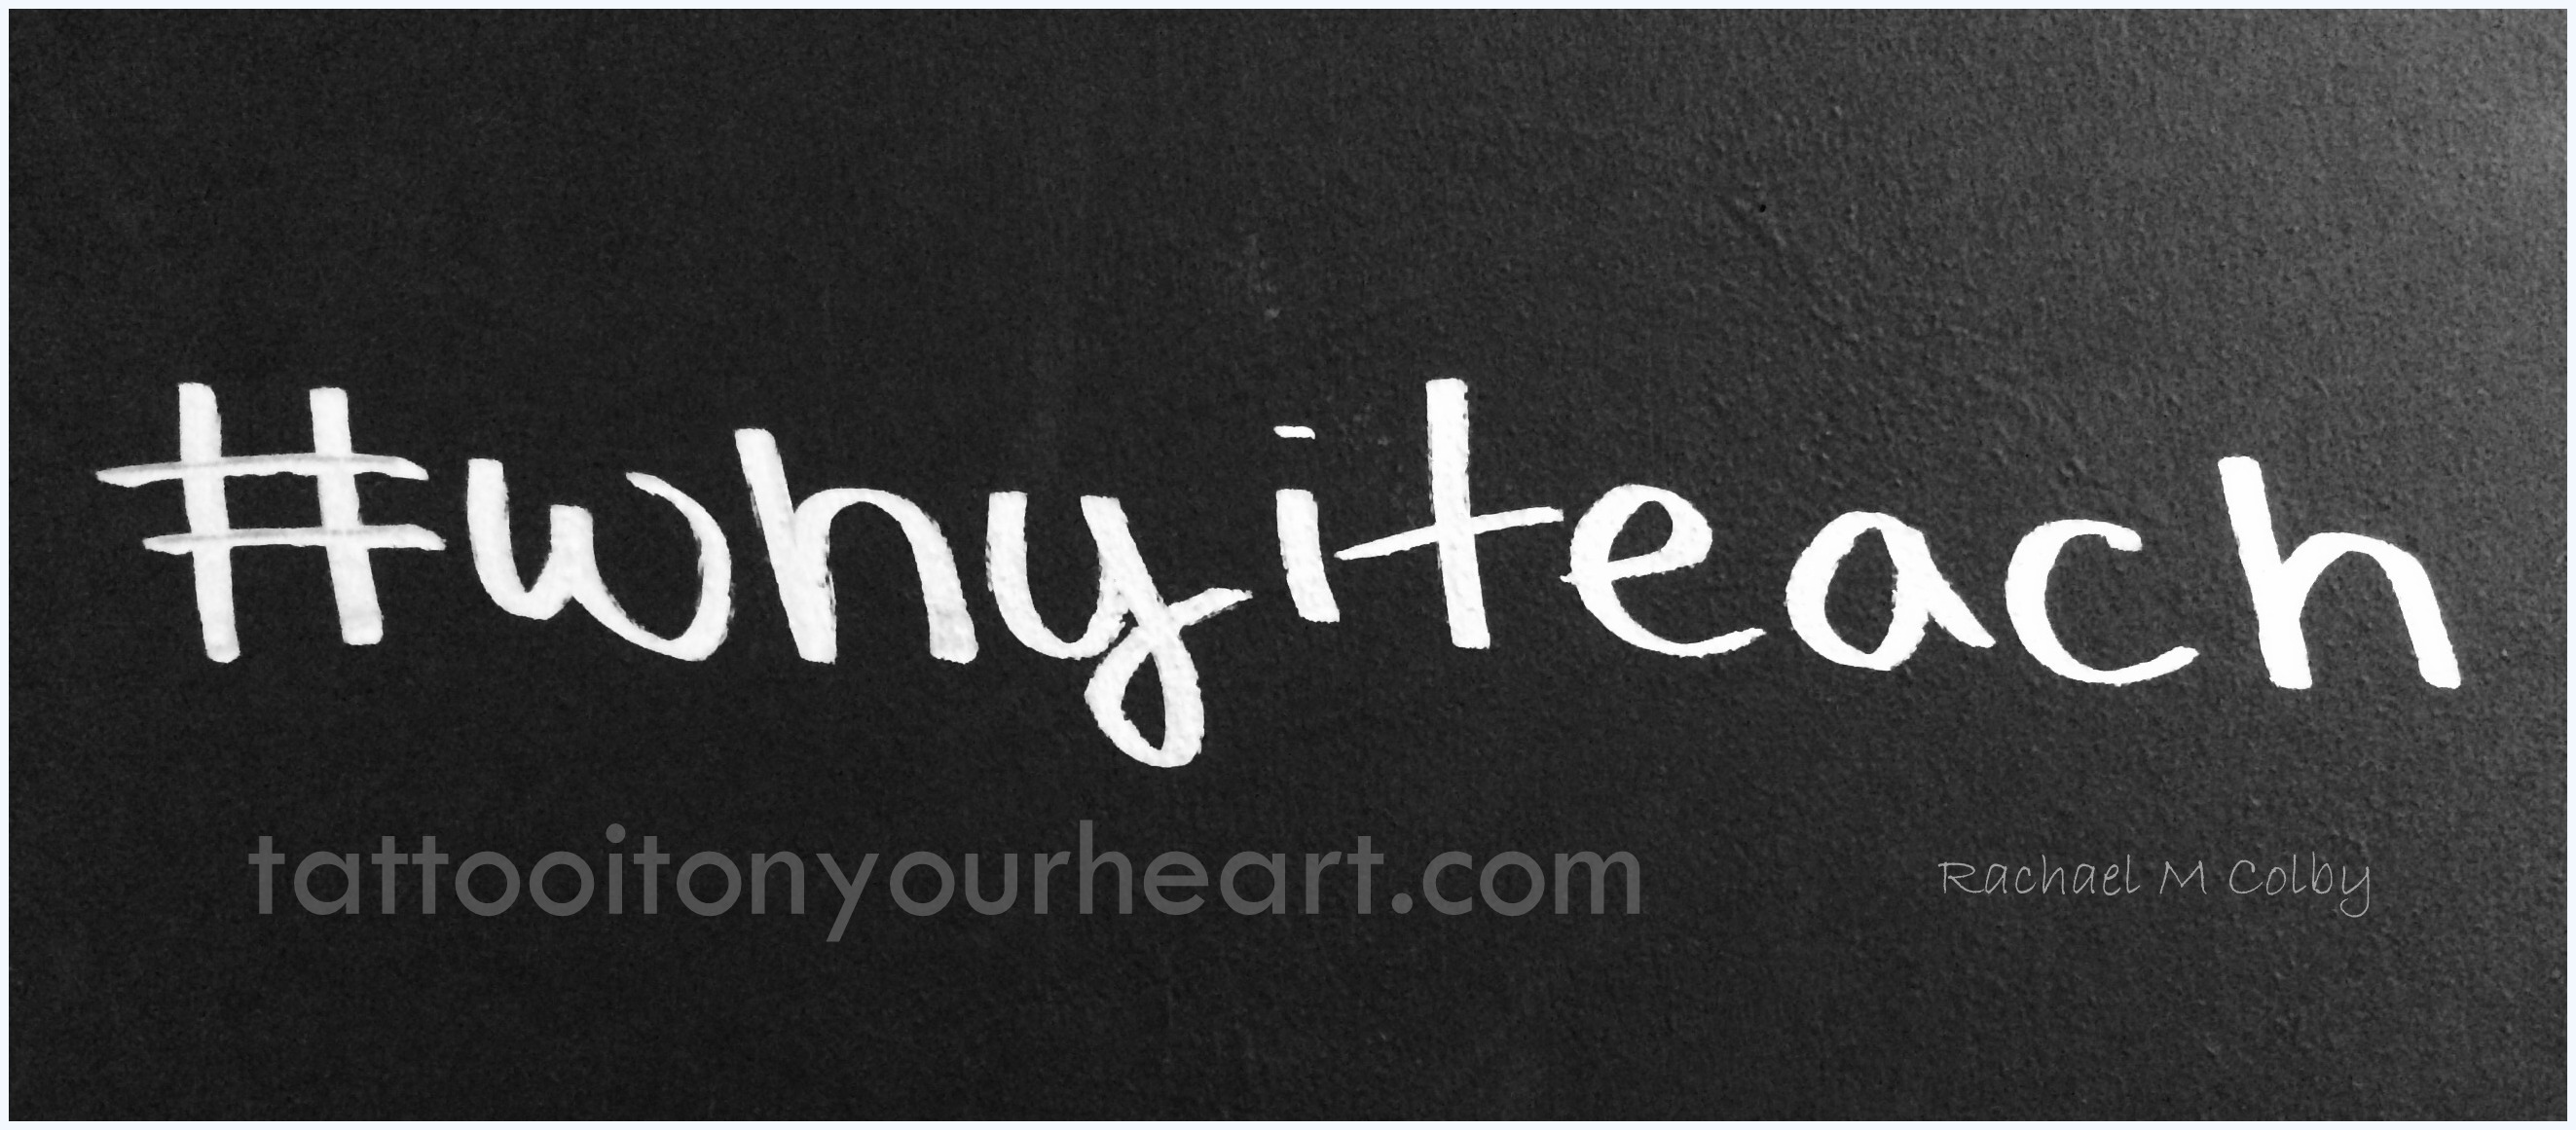 Rachael_M_Colby_blogs_capecodonline_Tattoo_it_On_Your_Heart_ Remind_me_#whyiteach